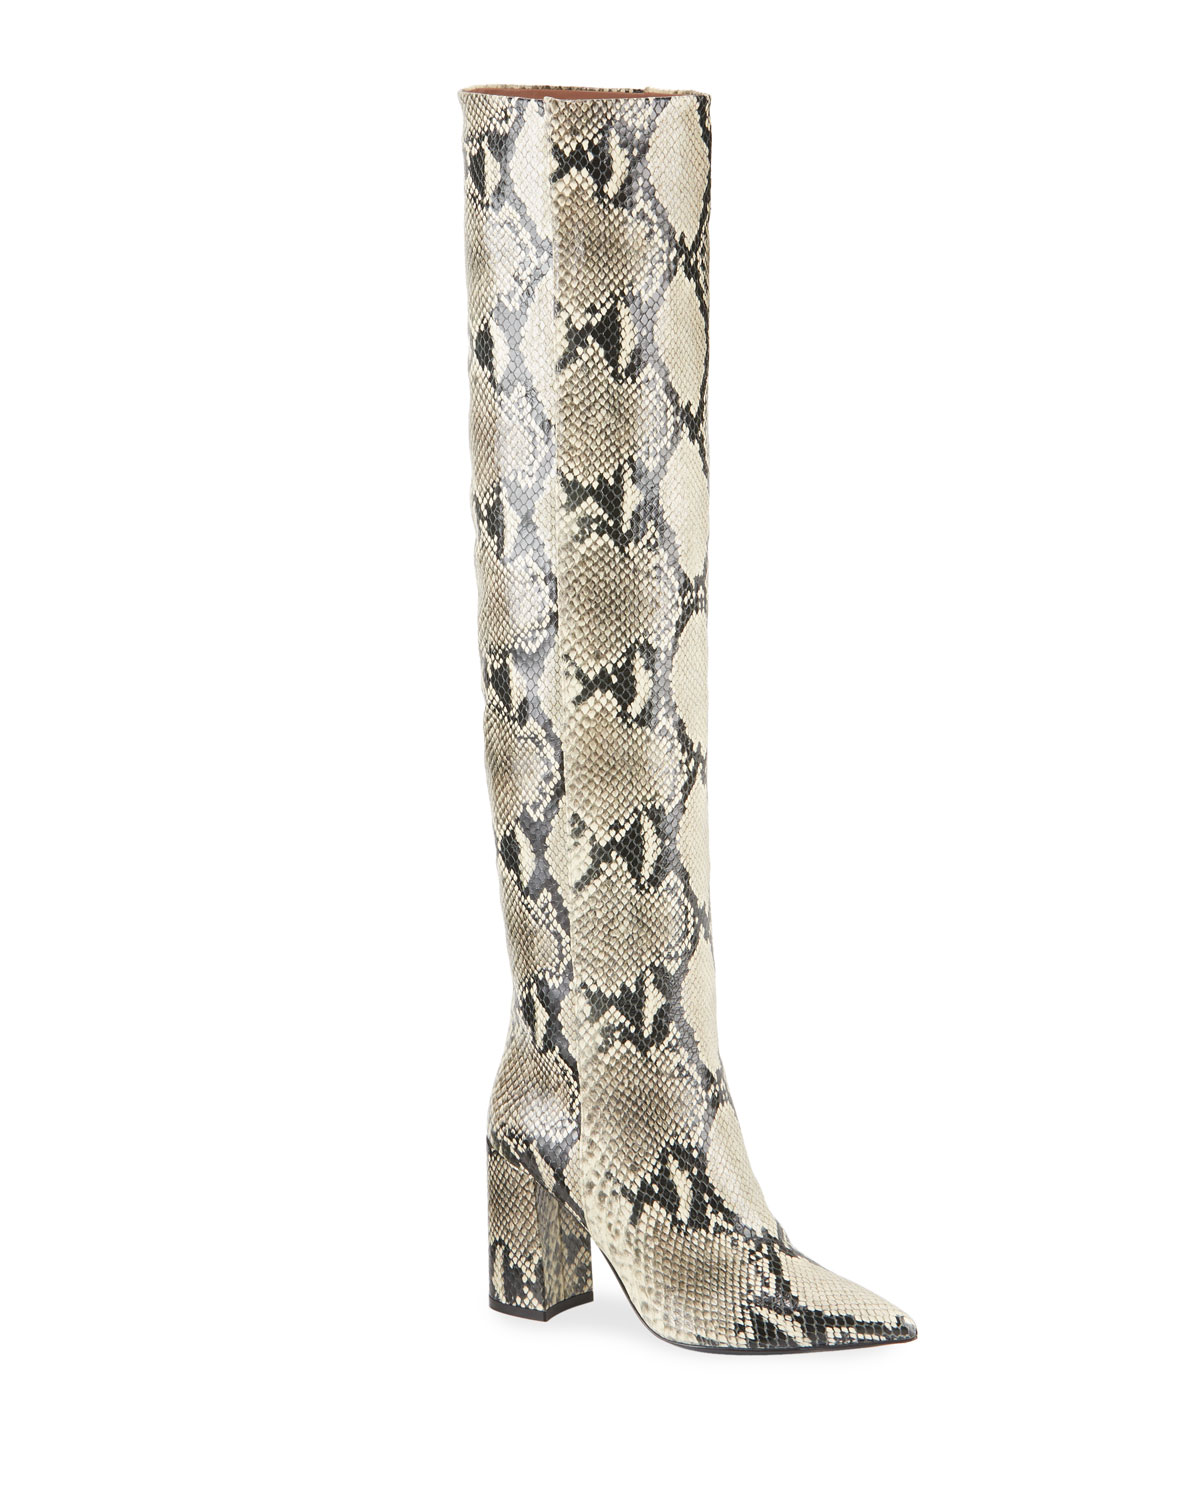 Tabitha Simmons Boots IZZY OVER-THE-KNEE PYTHON-PRINT BOOTS